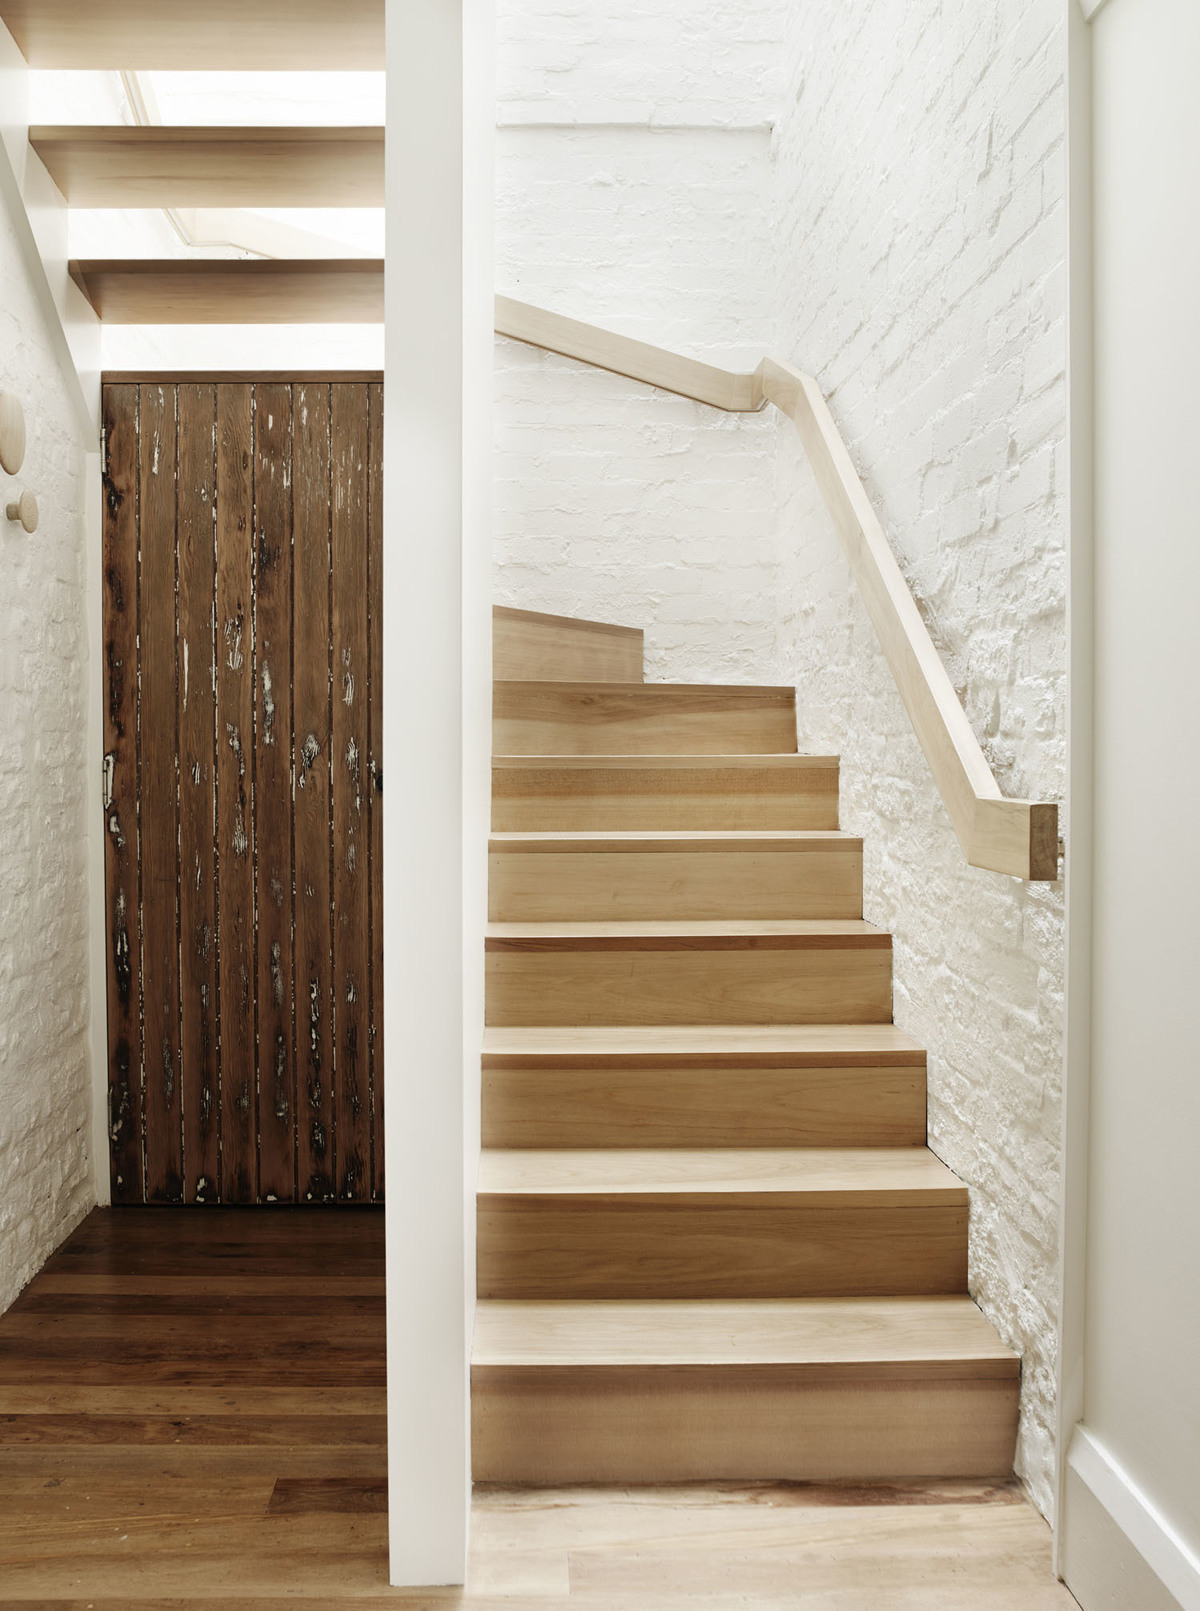 Coogee House - Local Timber Stairwell - Madeleine Blanchfield Architects - Interior Archive